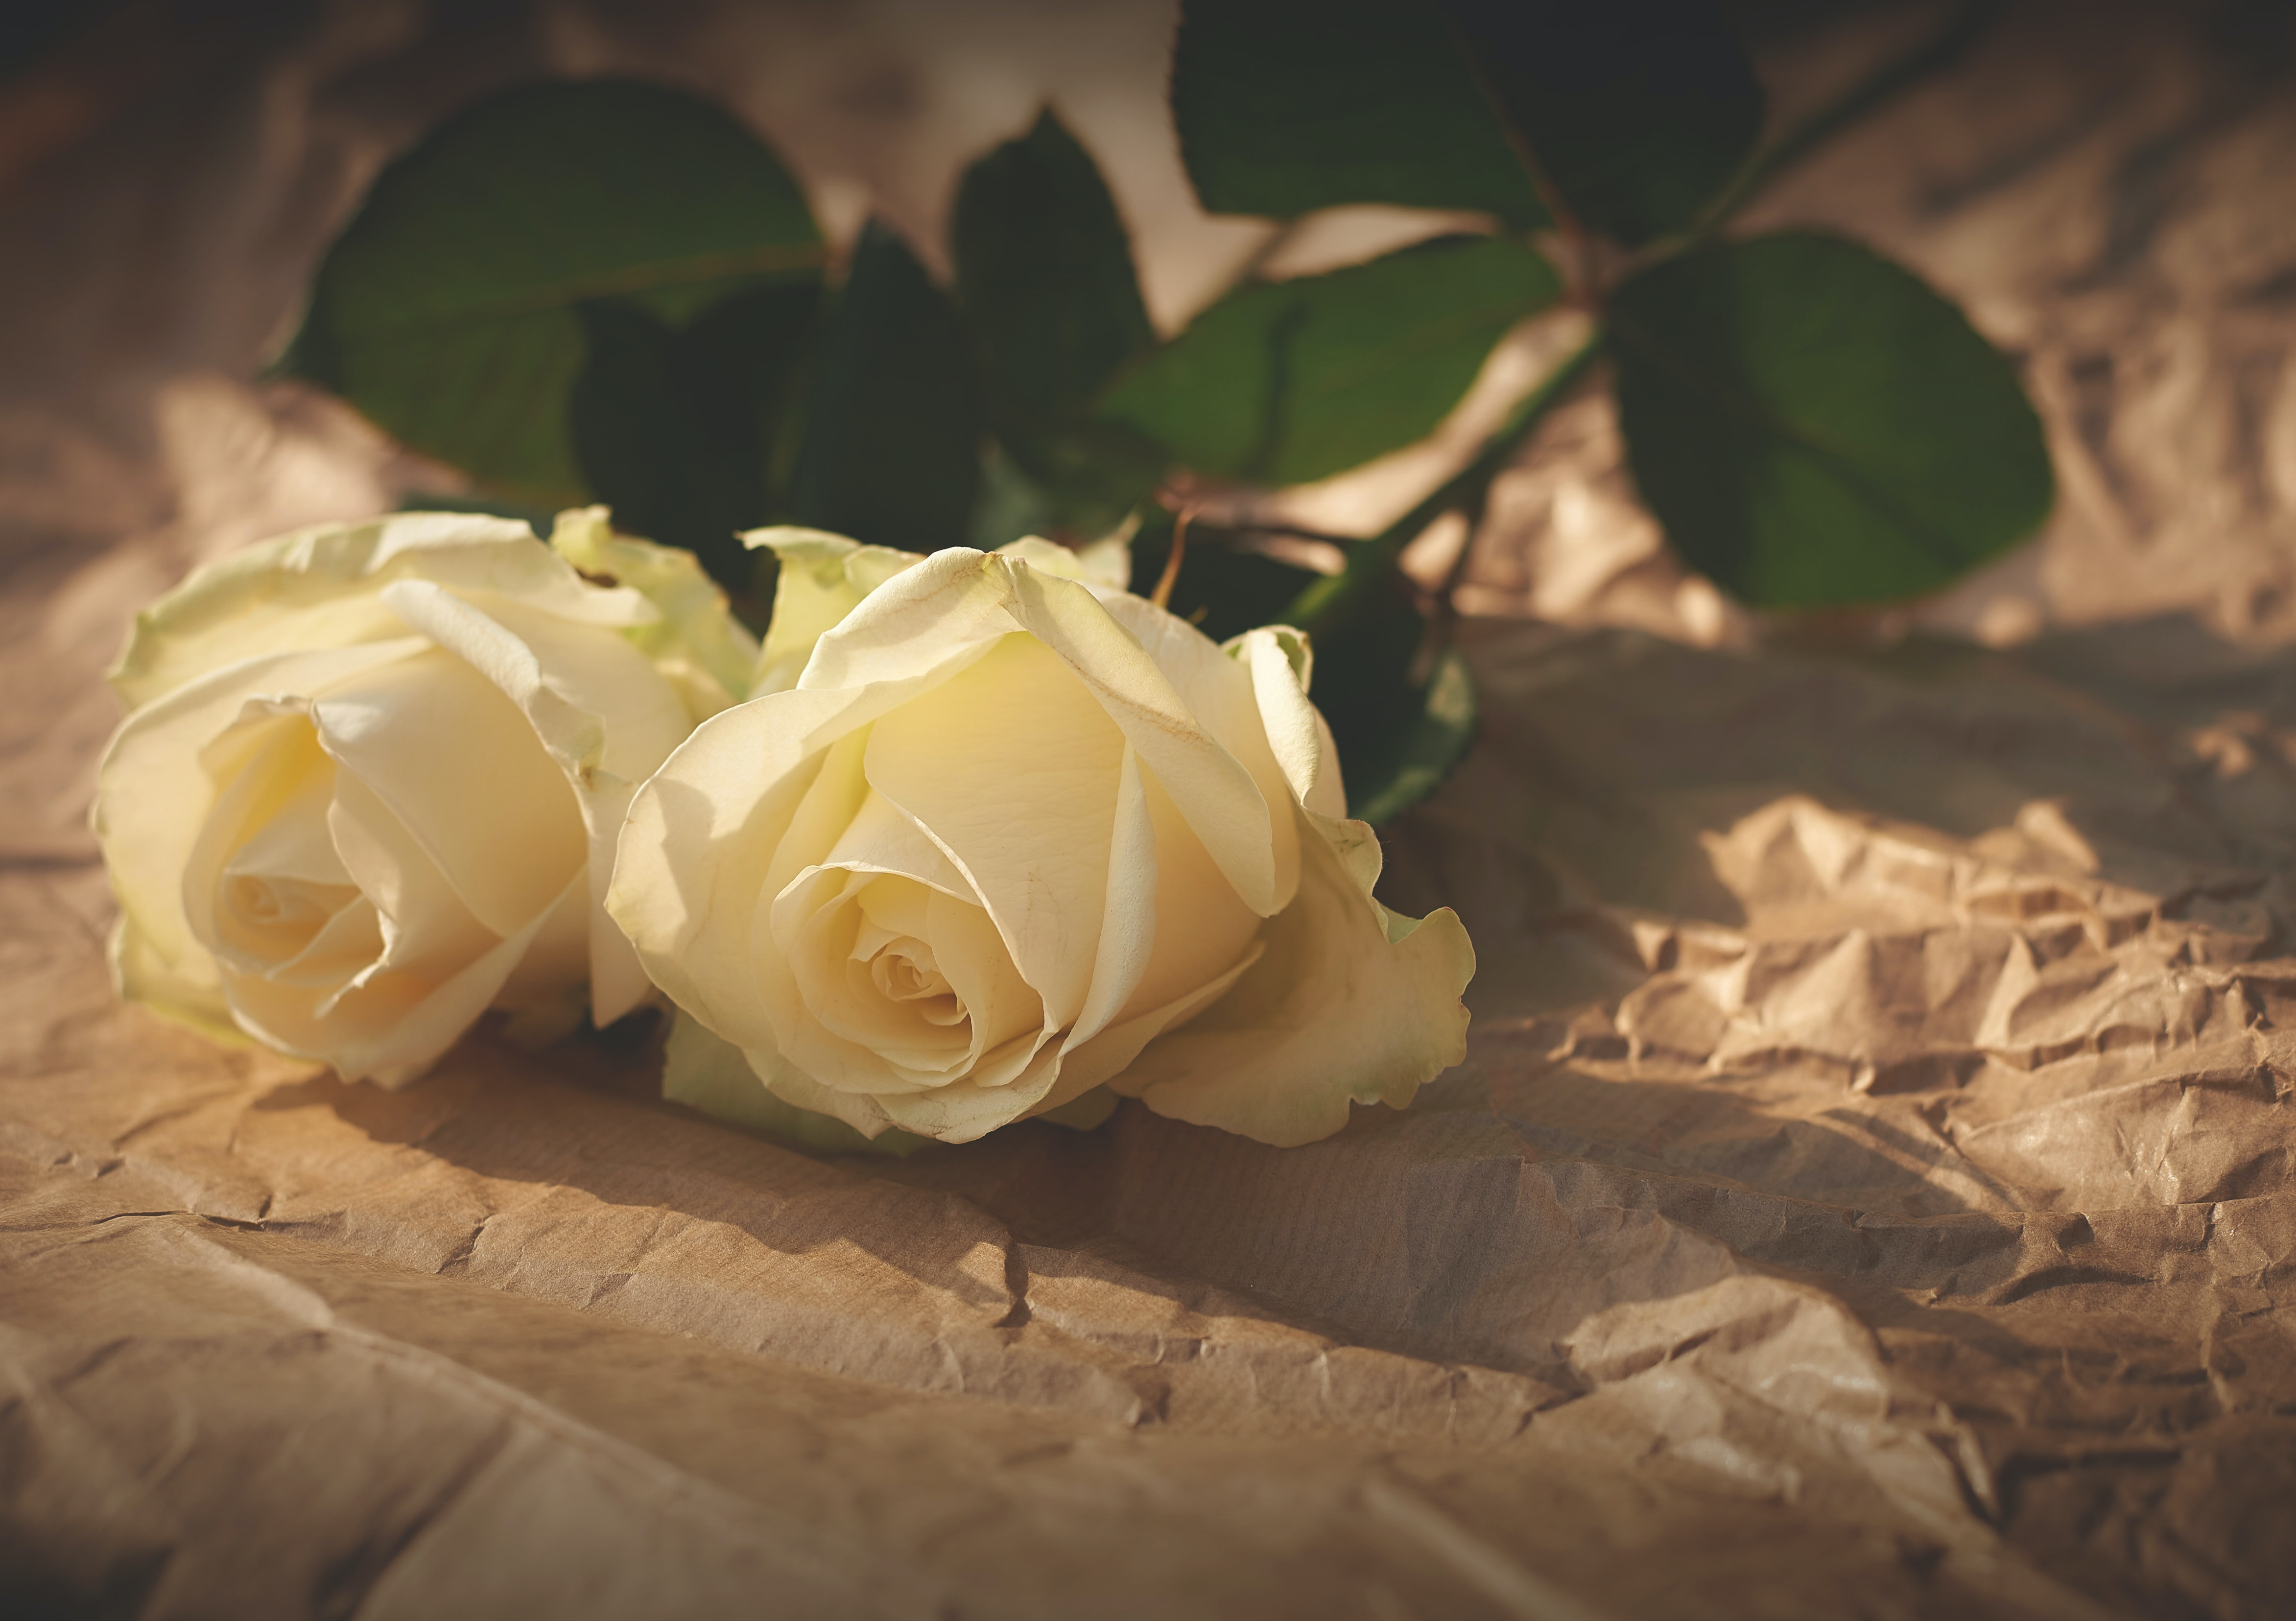 Two cream-colored roses sit atop crumpled brown paper